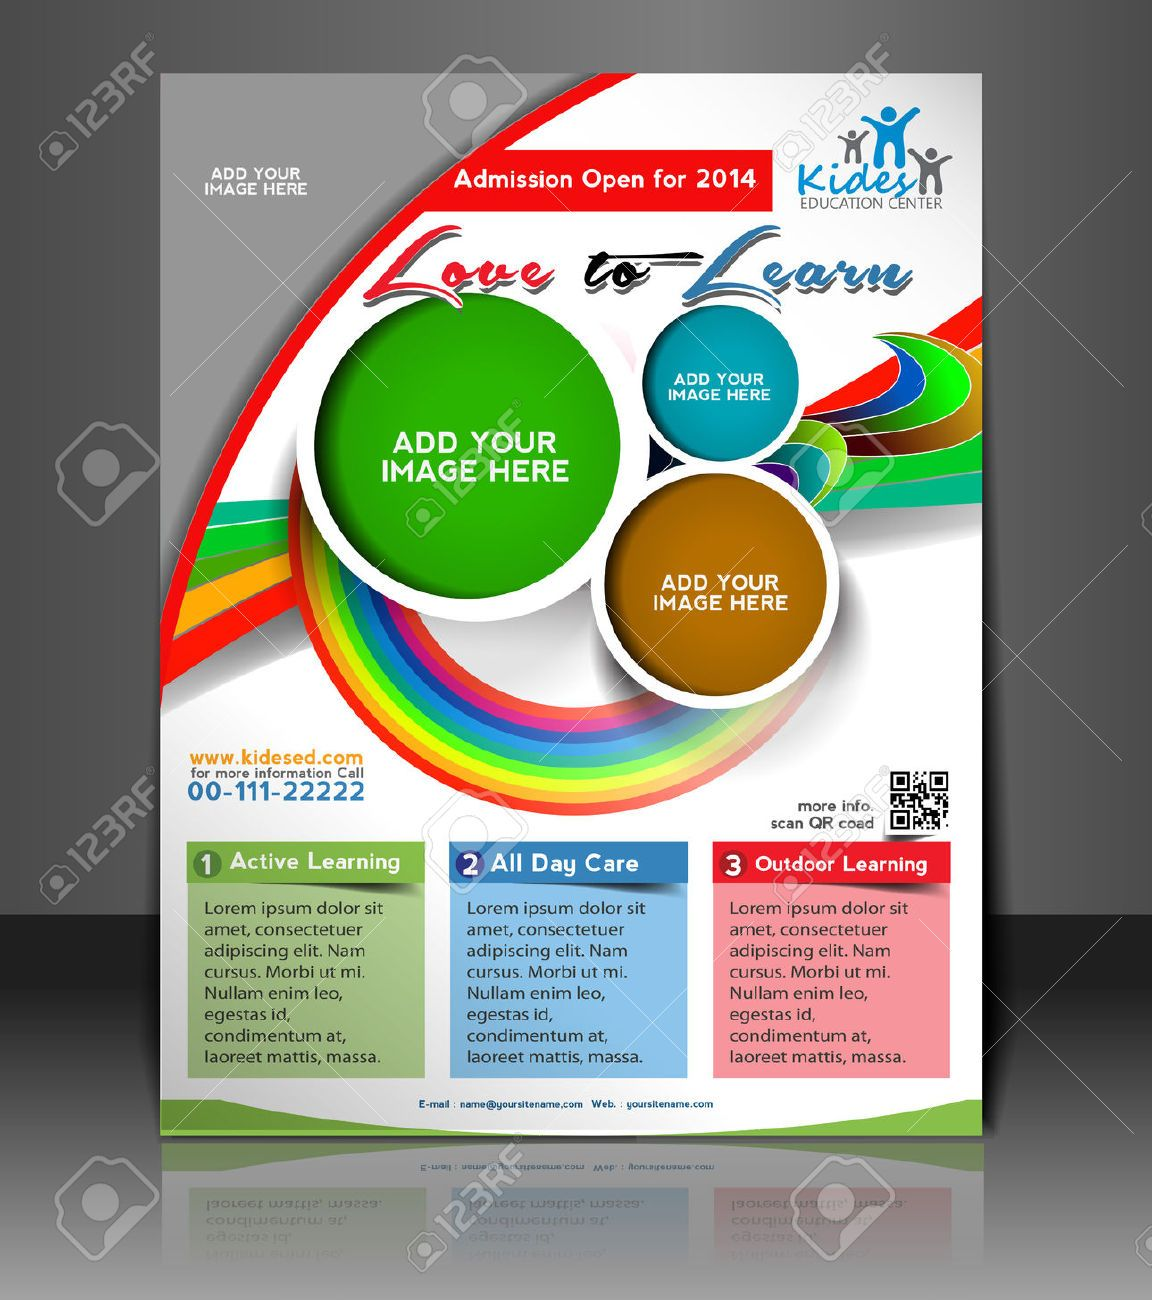 Flyer Template School Images, Stock Pictures, Royalty Free Flyer ...